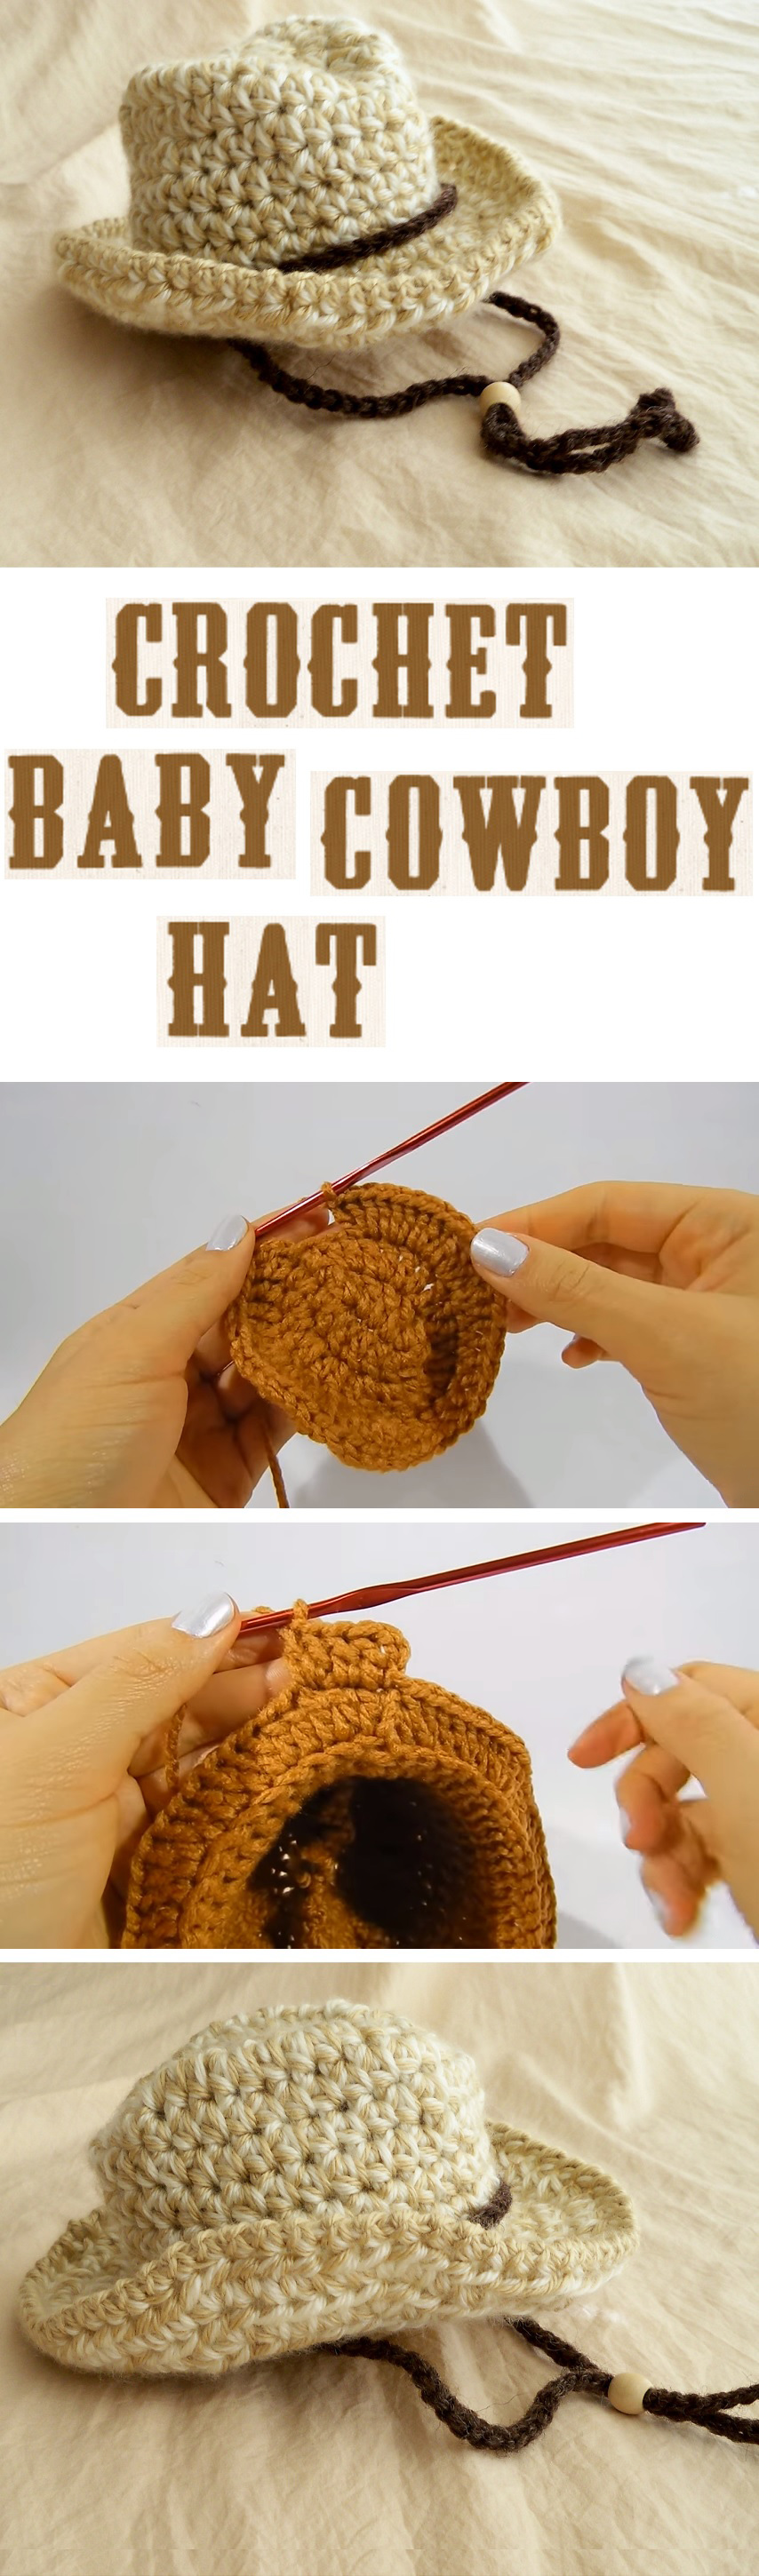 Crochet Baby Cowboy Hat - Design Peak